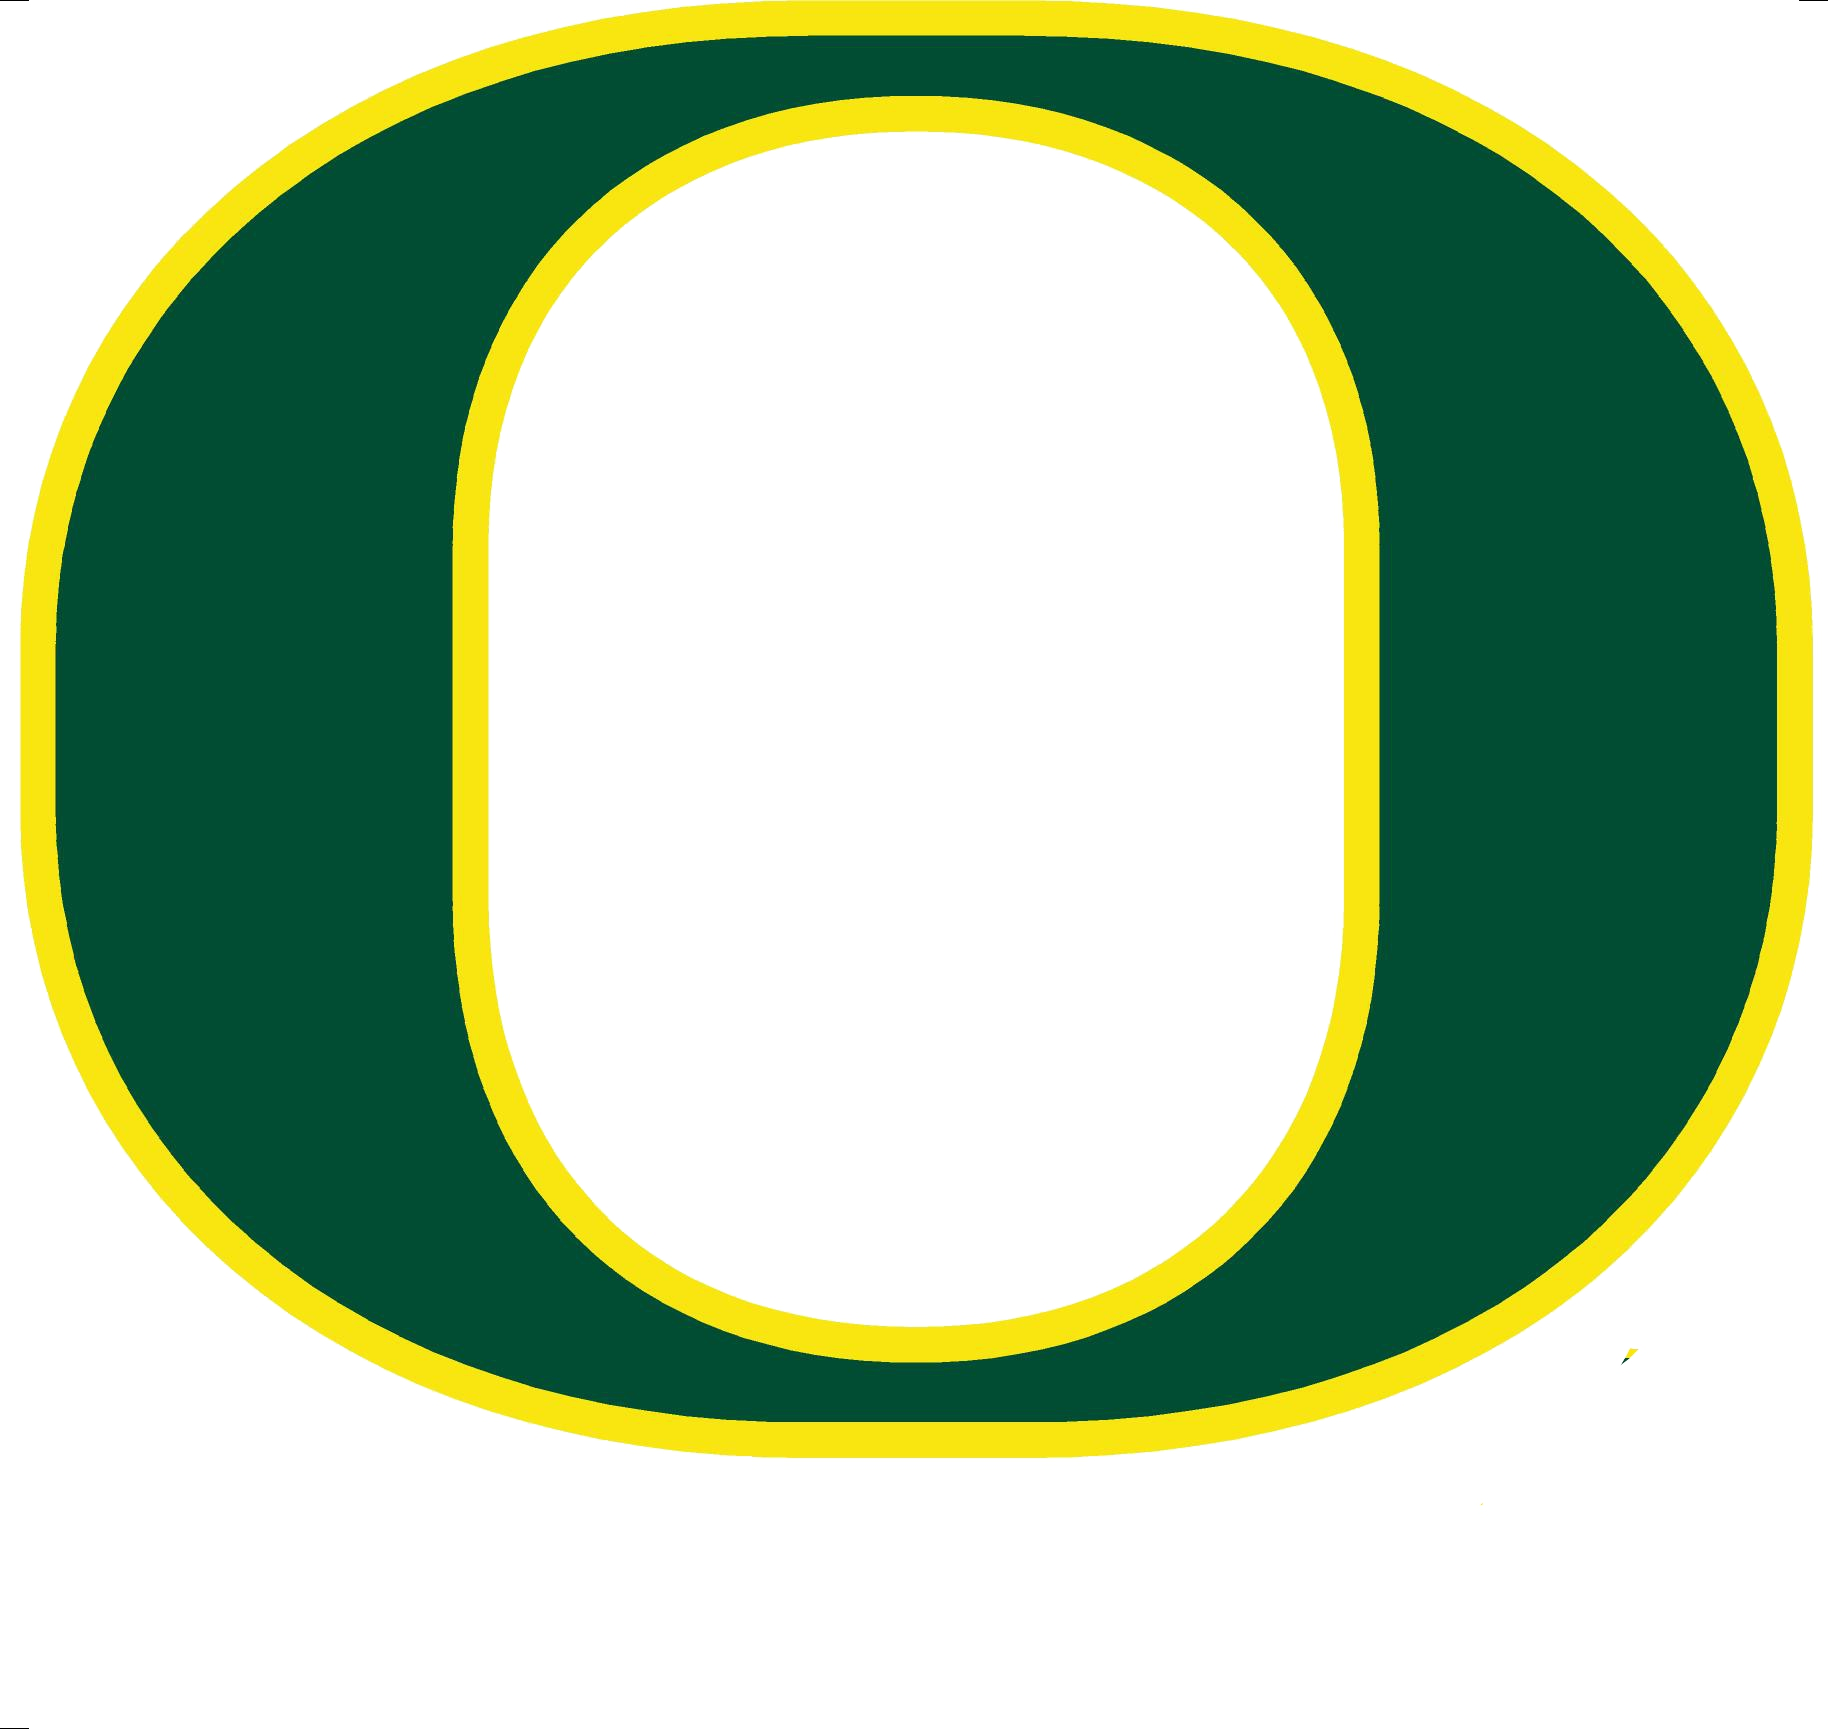 University of Oregon (DI) - Manny Martins